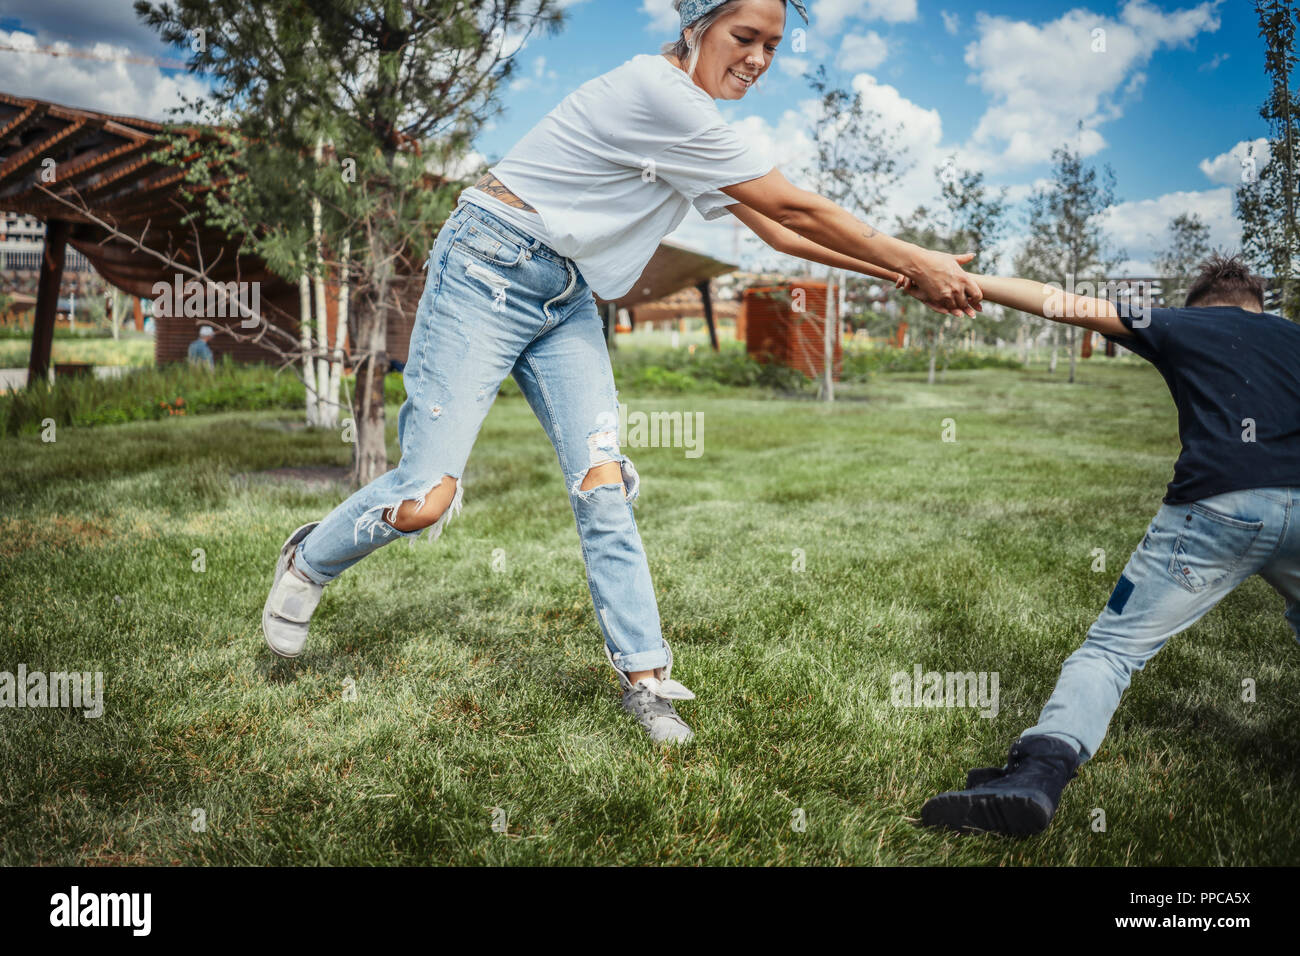 Young mum turning around, whirling with her sons at park. Happy family concept. - Stock Image